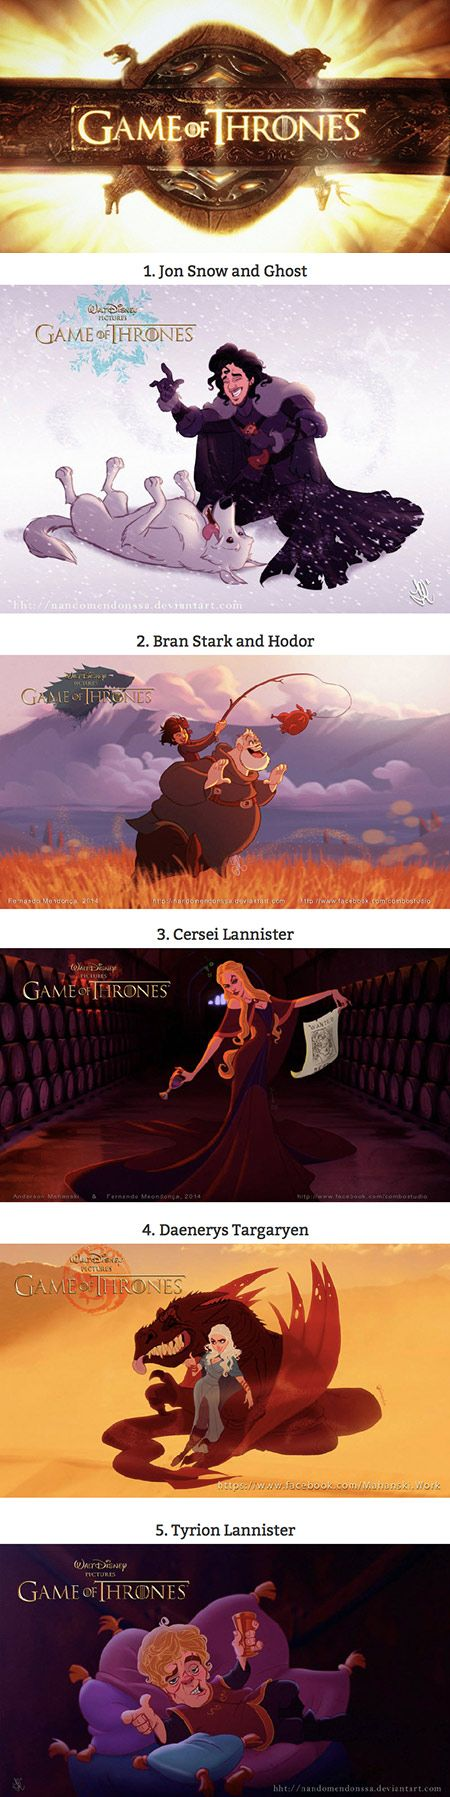 Full set of Game of Thrones Disney-Style